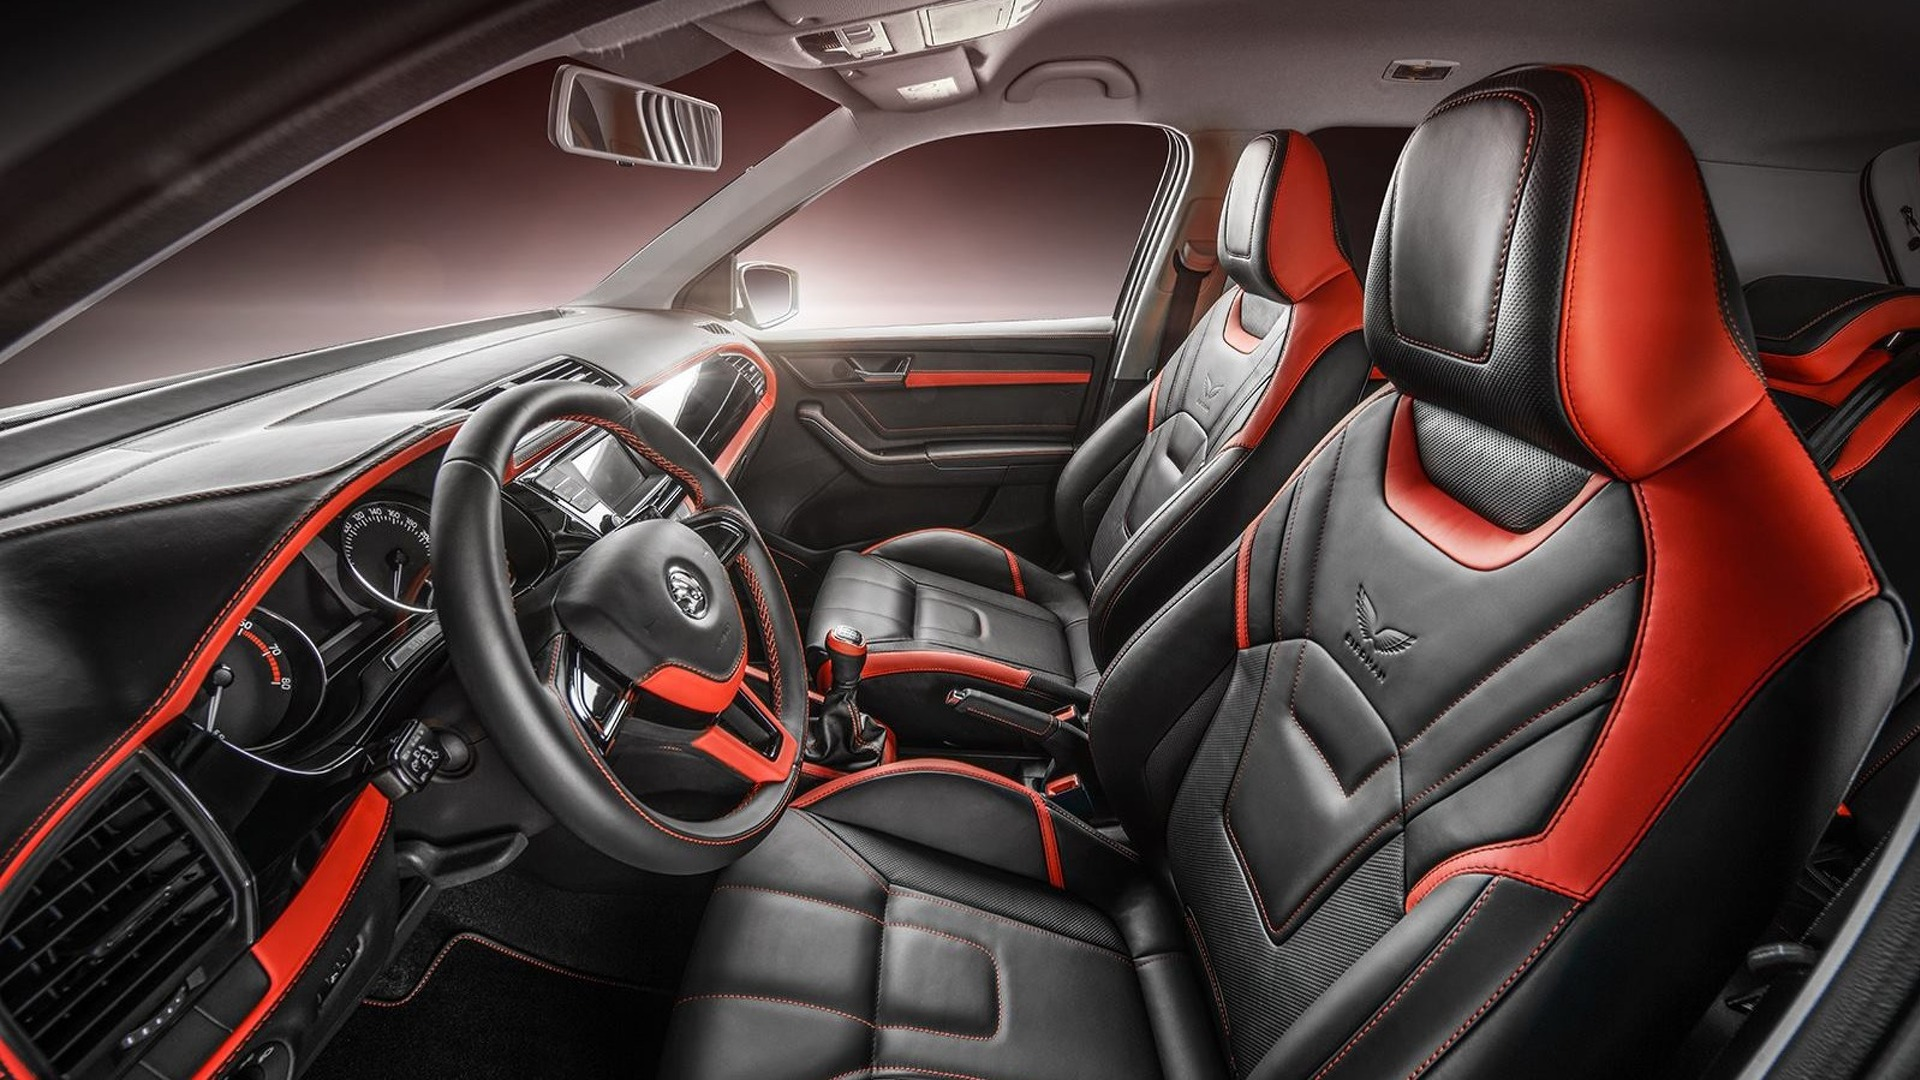 Is this the nicest Skoda Fabia interior in existence?